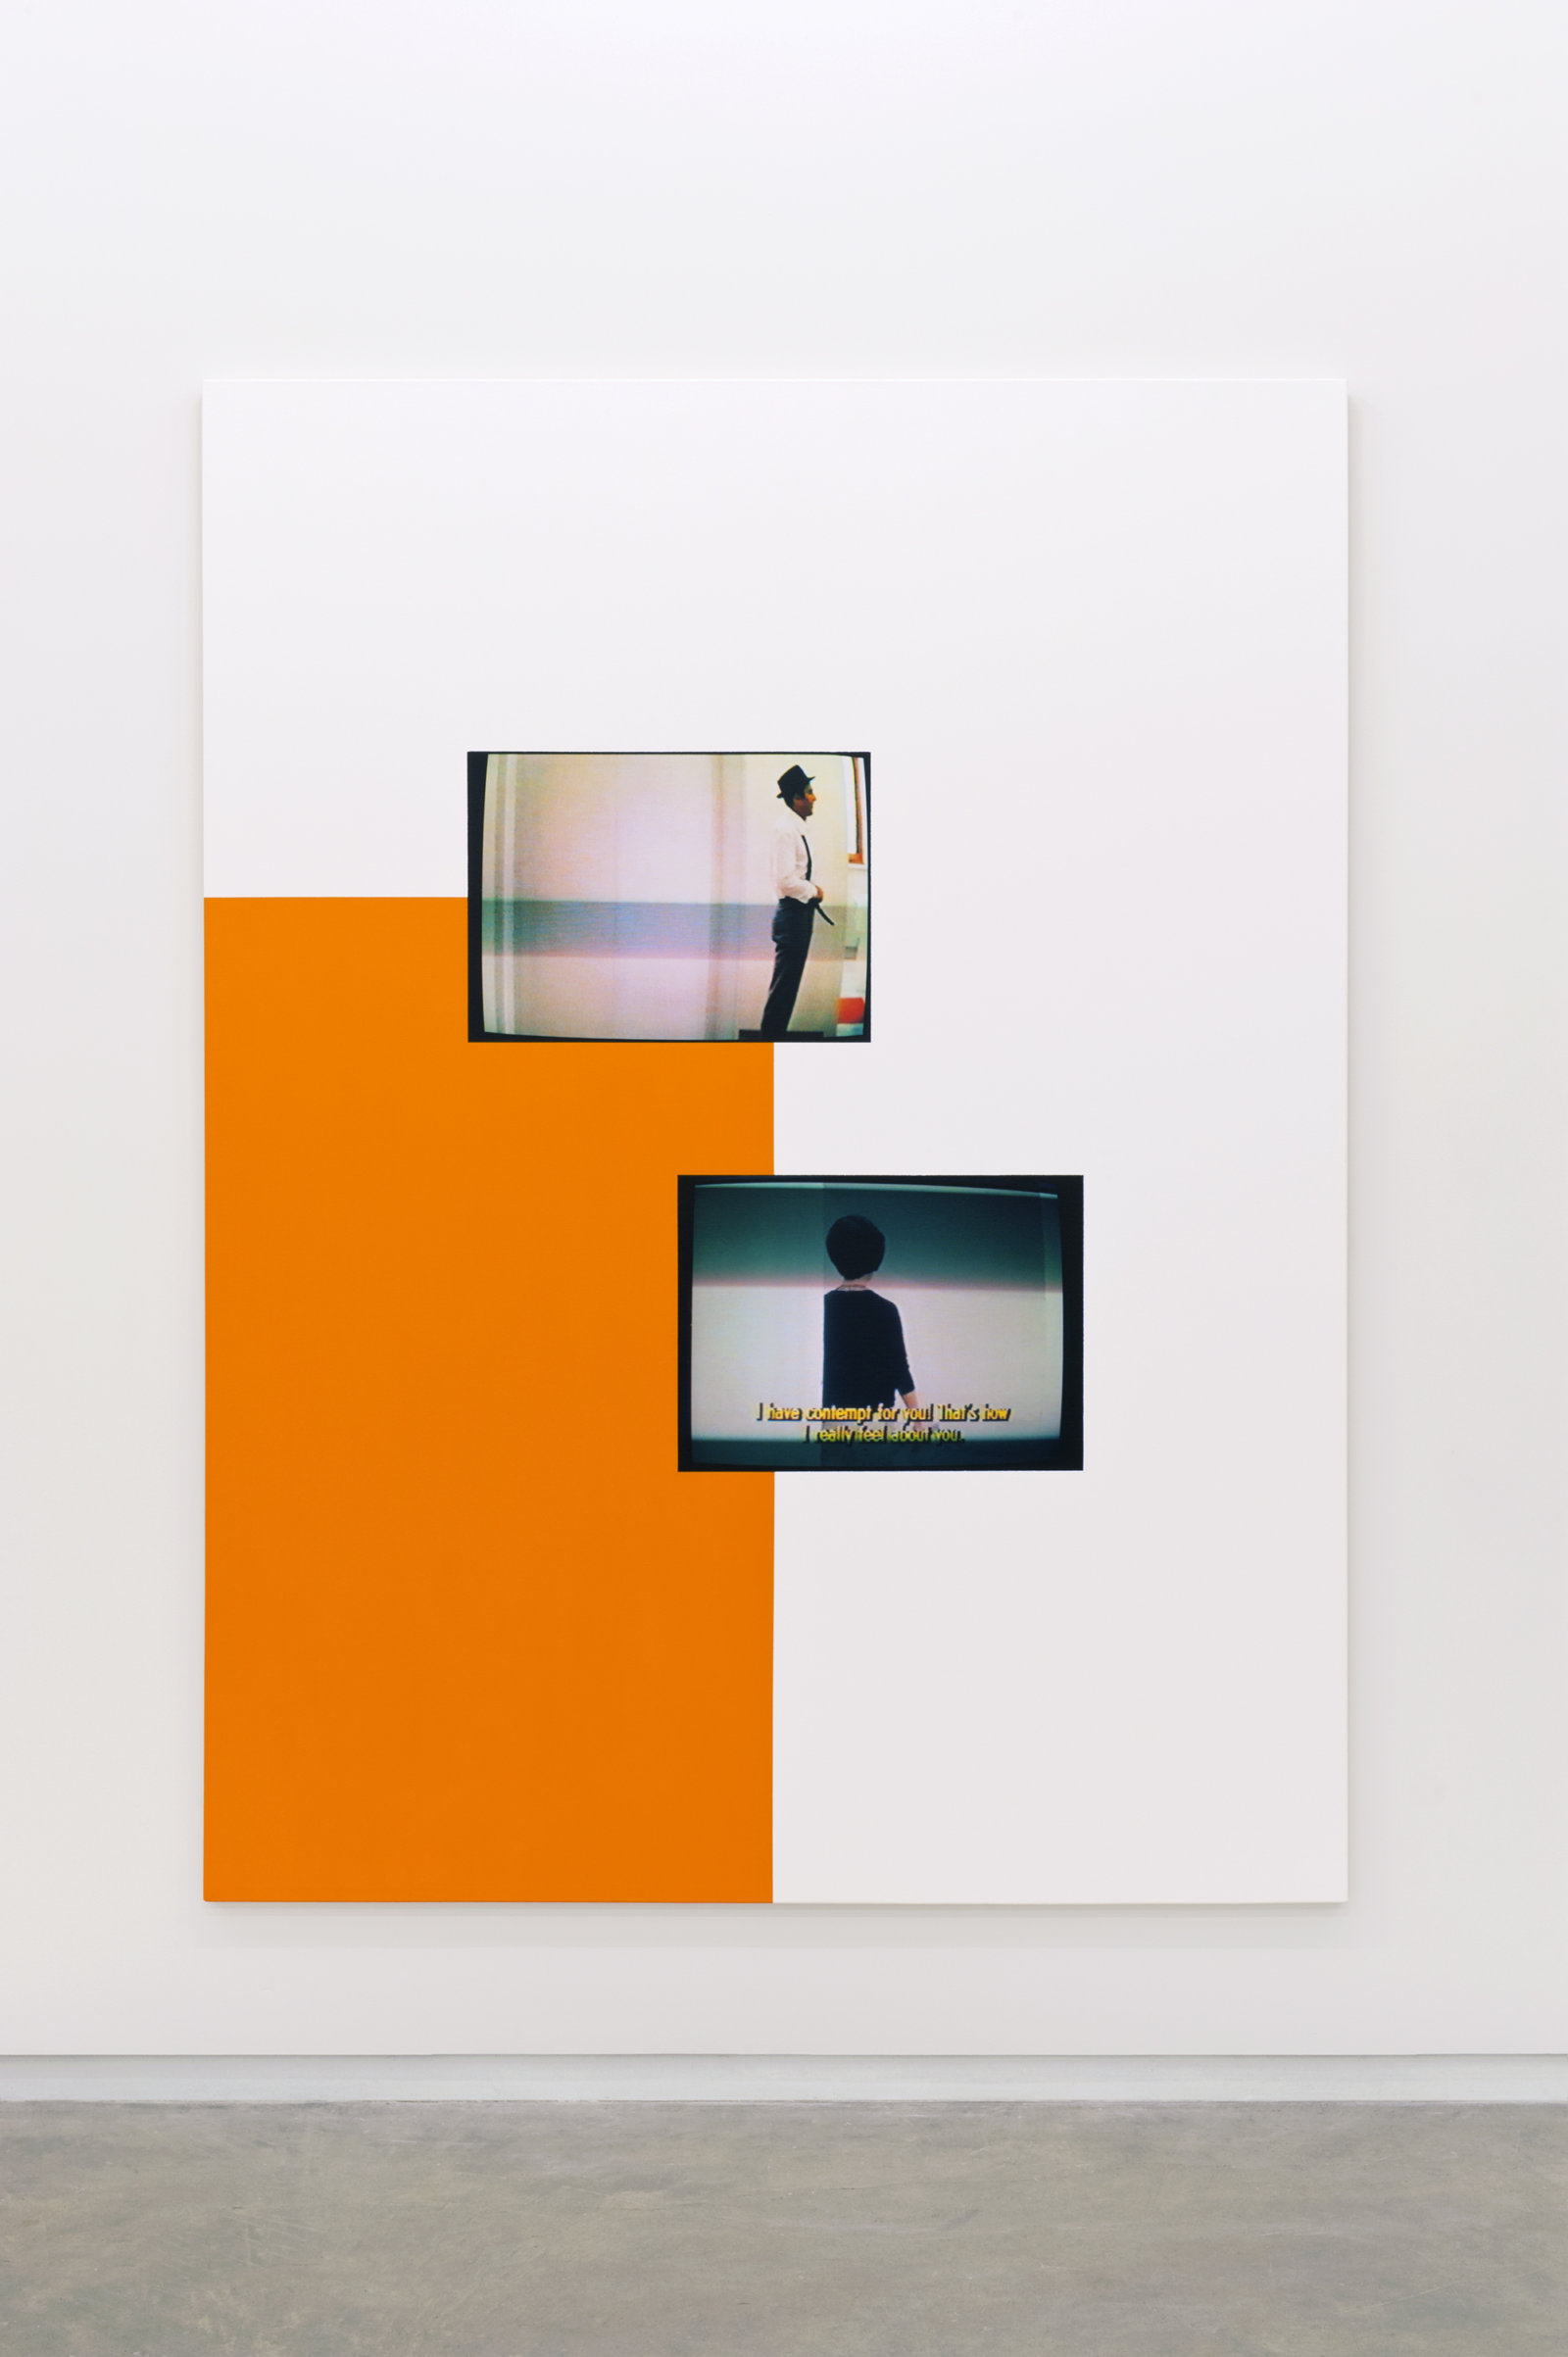 Ian Wallace, Le Mépris (The Contempt Scene), 2010, photolaminate and acrylic on canvas, 96 x 72 in. (244 x 183 cm) by Ian Wallace